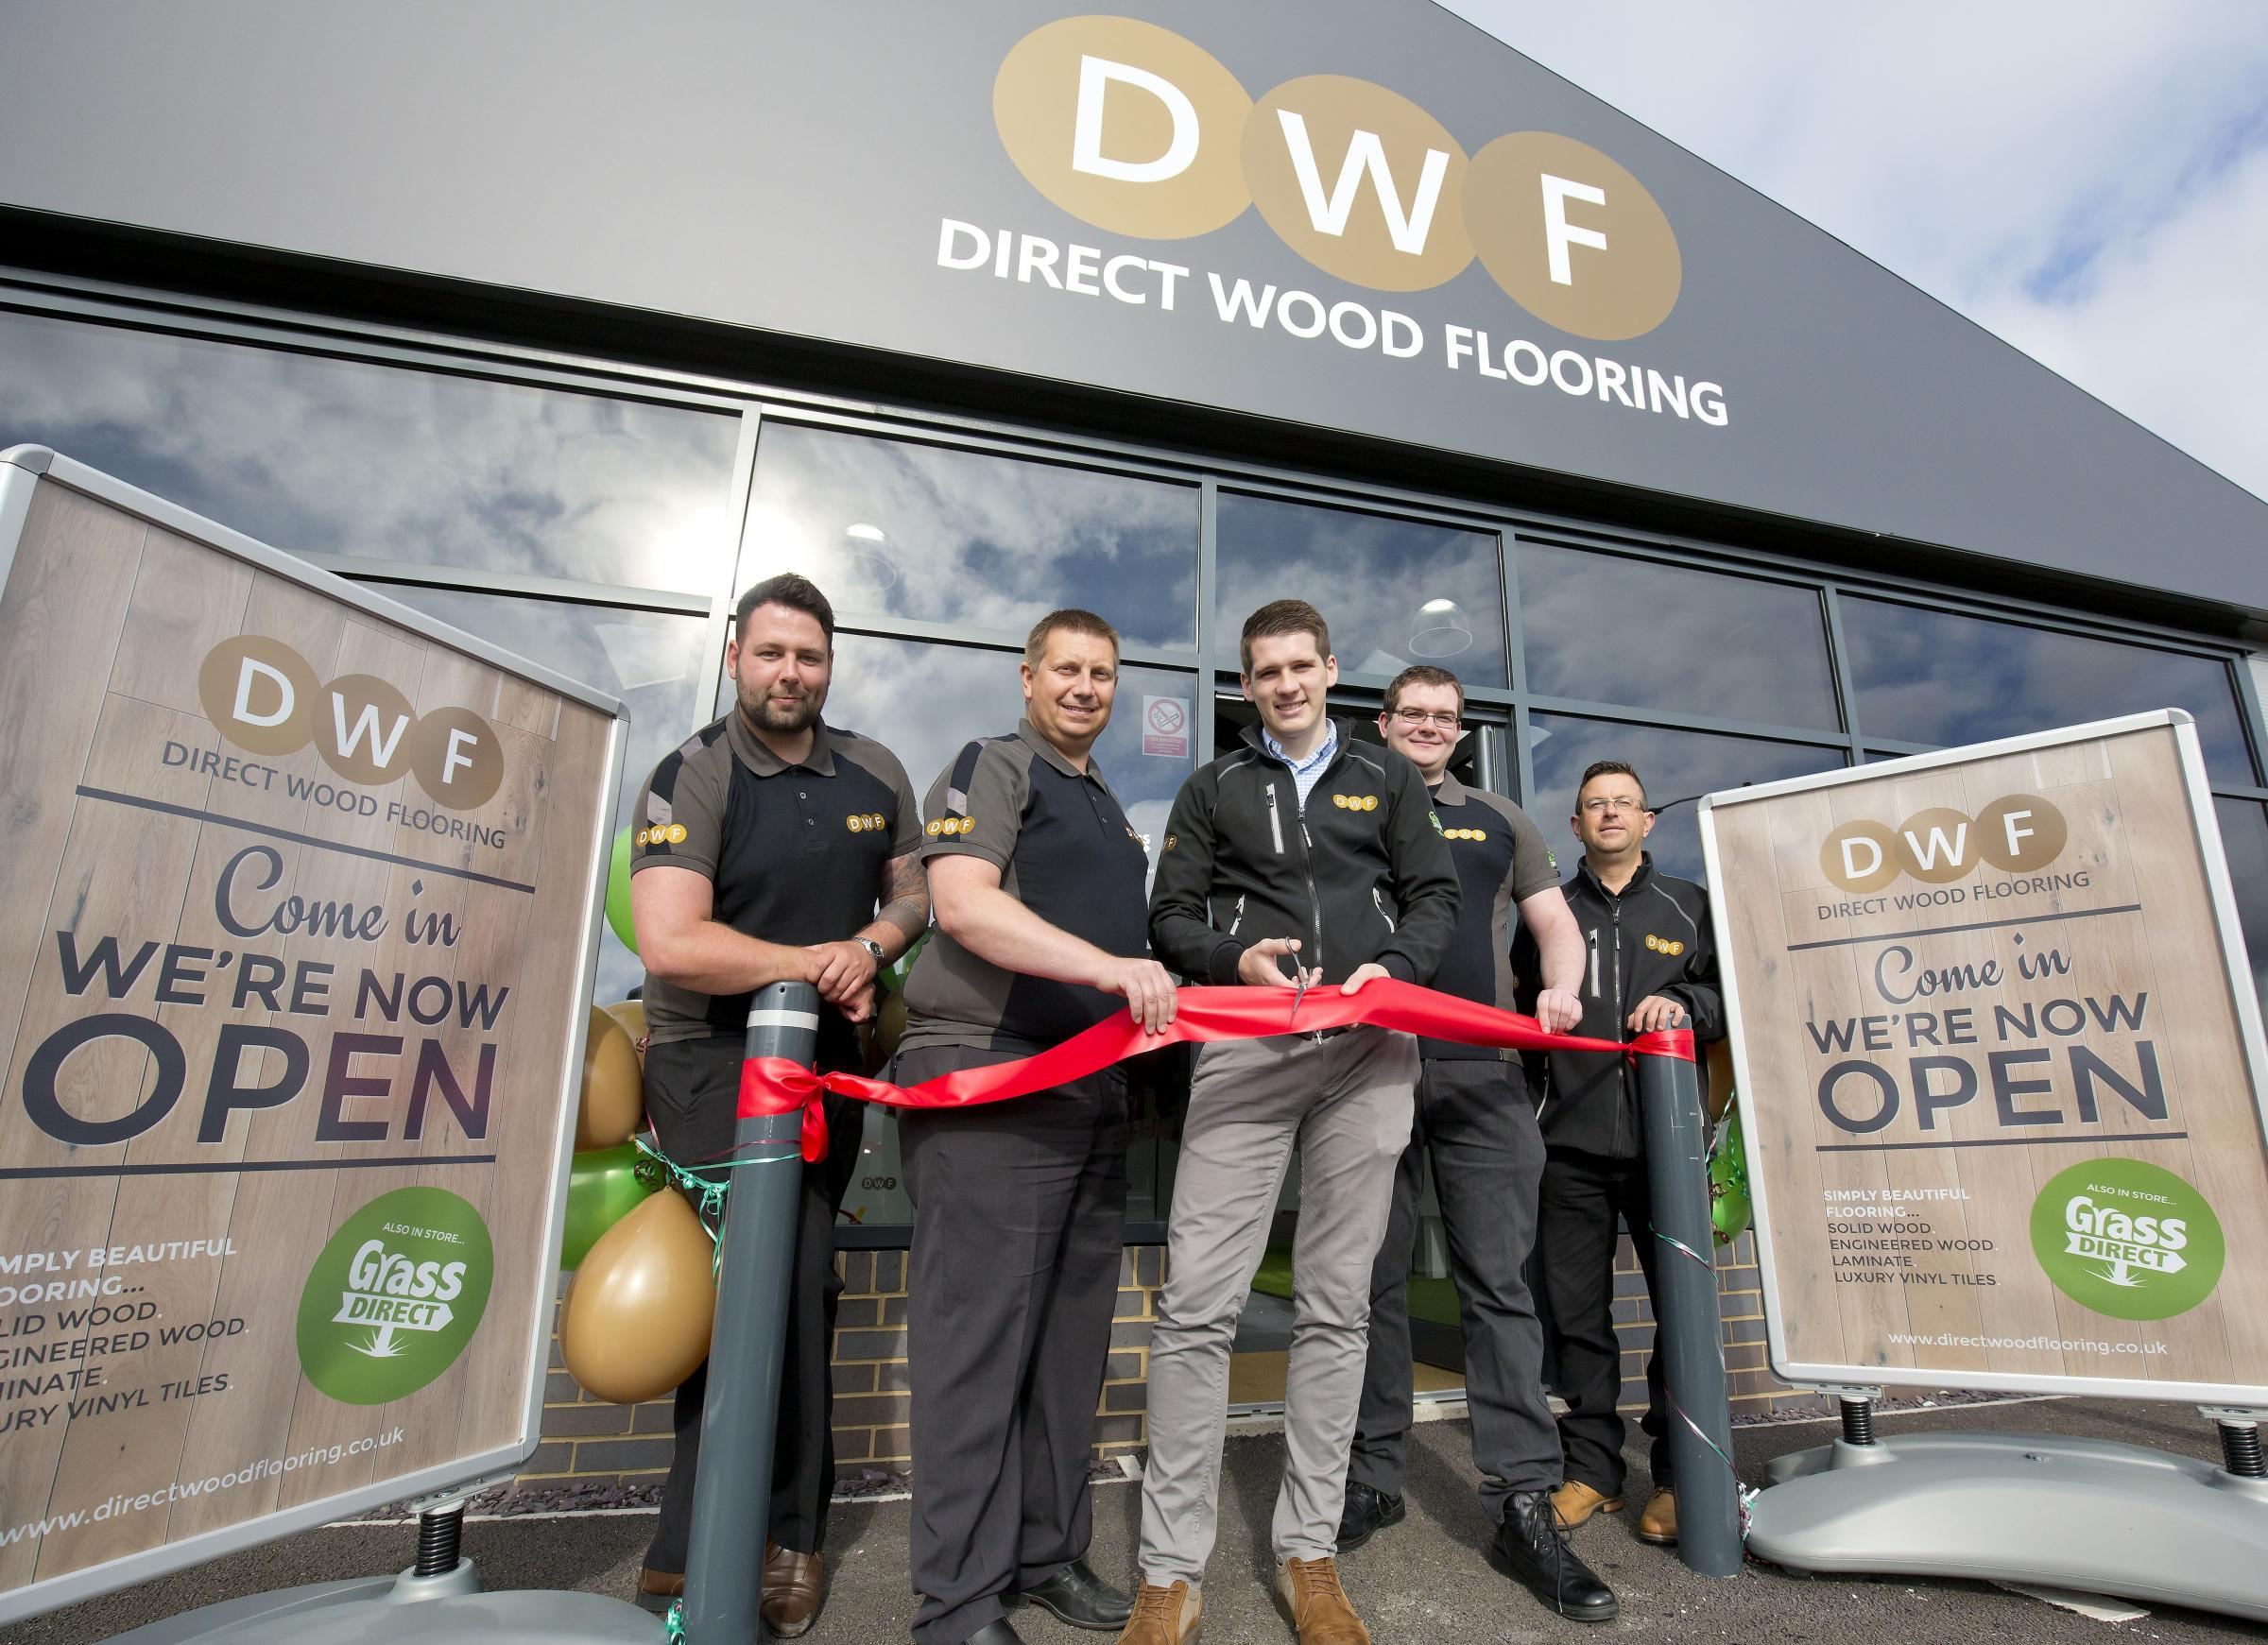 At the Direct Wood Flooring earlier this year, from left, Stuart Crawford, Mark Clayton (store manager), Chris Barber (retail operations manager), Michael King and Richard Aldridge